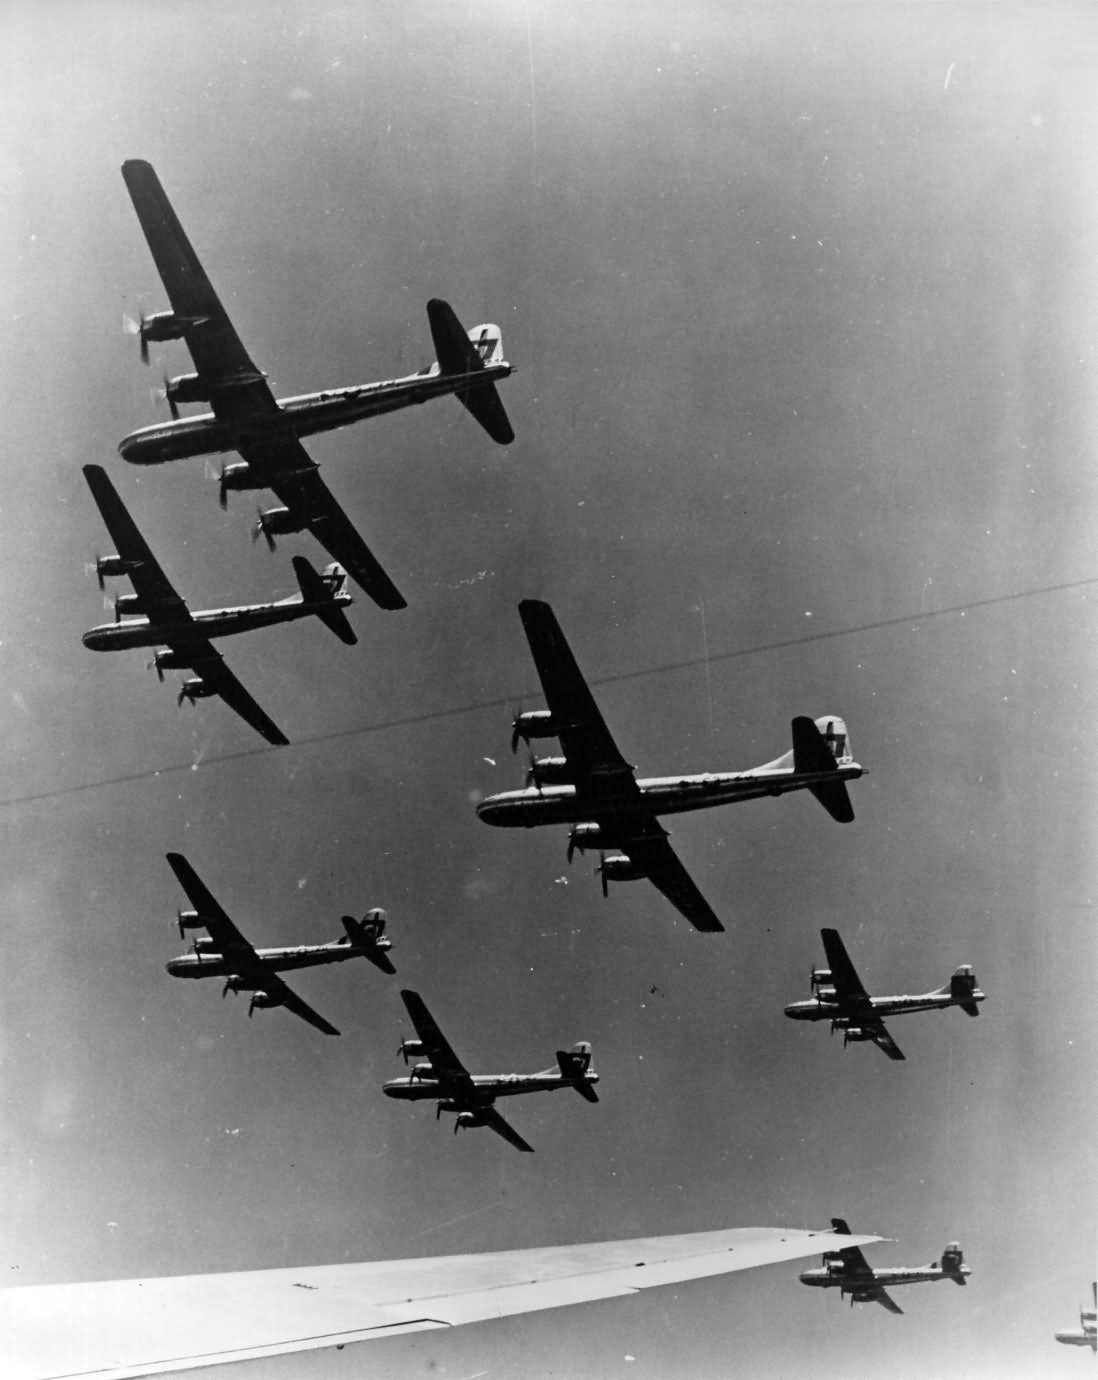 B-29 Superfortress 314 Bomb Wing formation